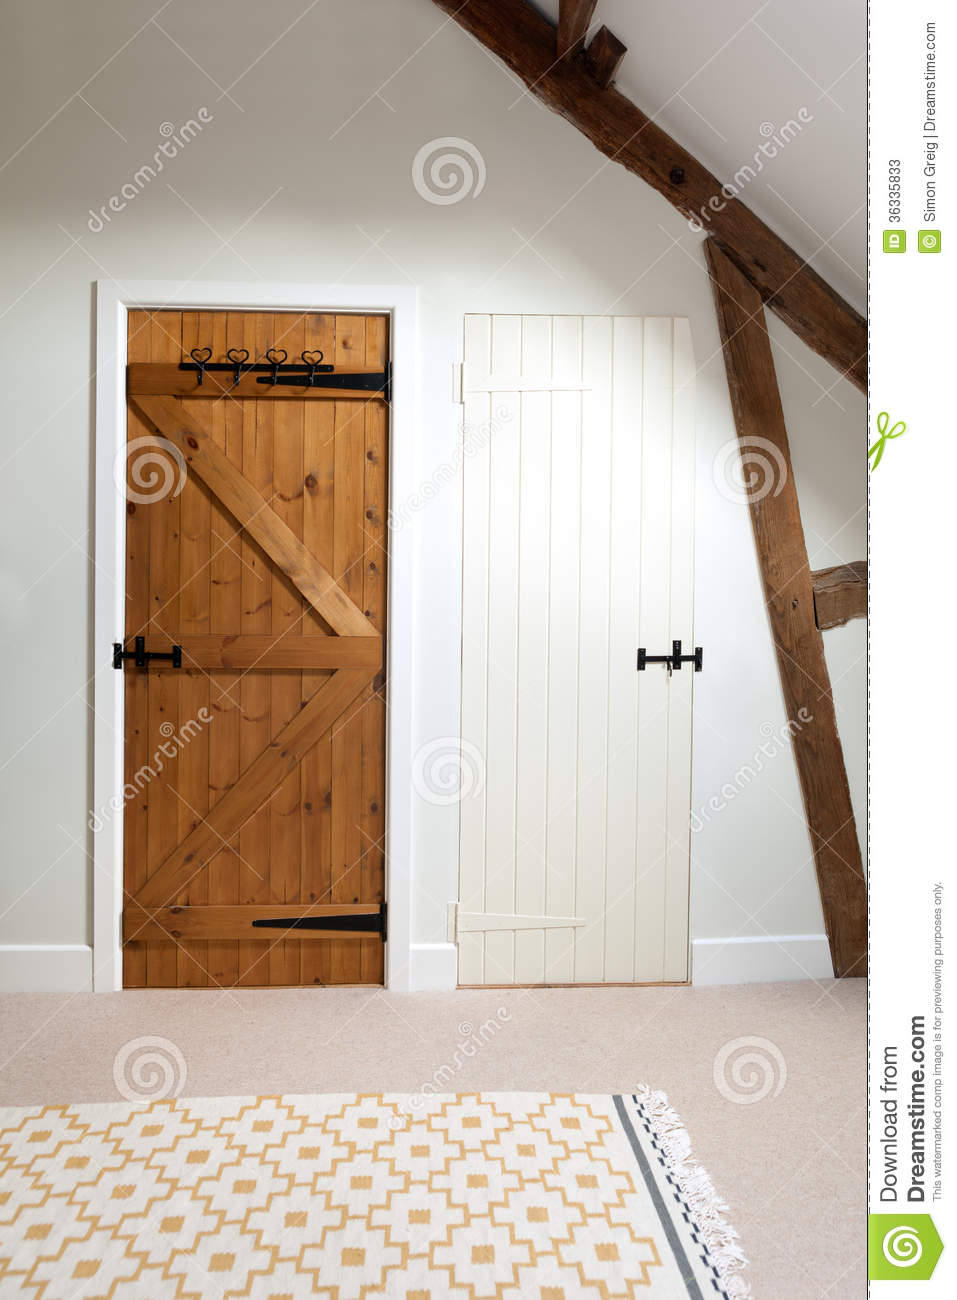 Two Wooden Doors in a Loft & Two Wooden Doors in a Loft stock image. Image of wooden - 36335833